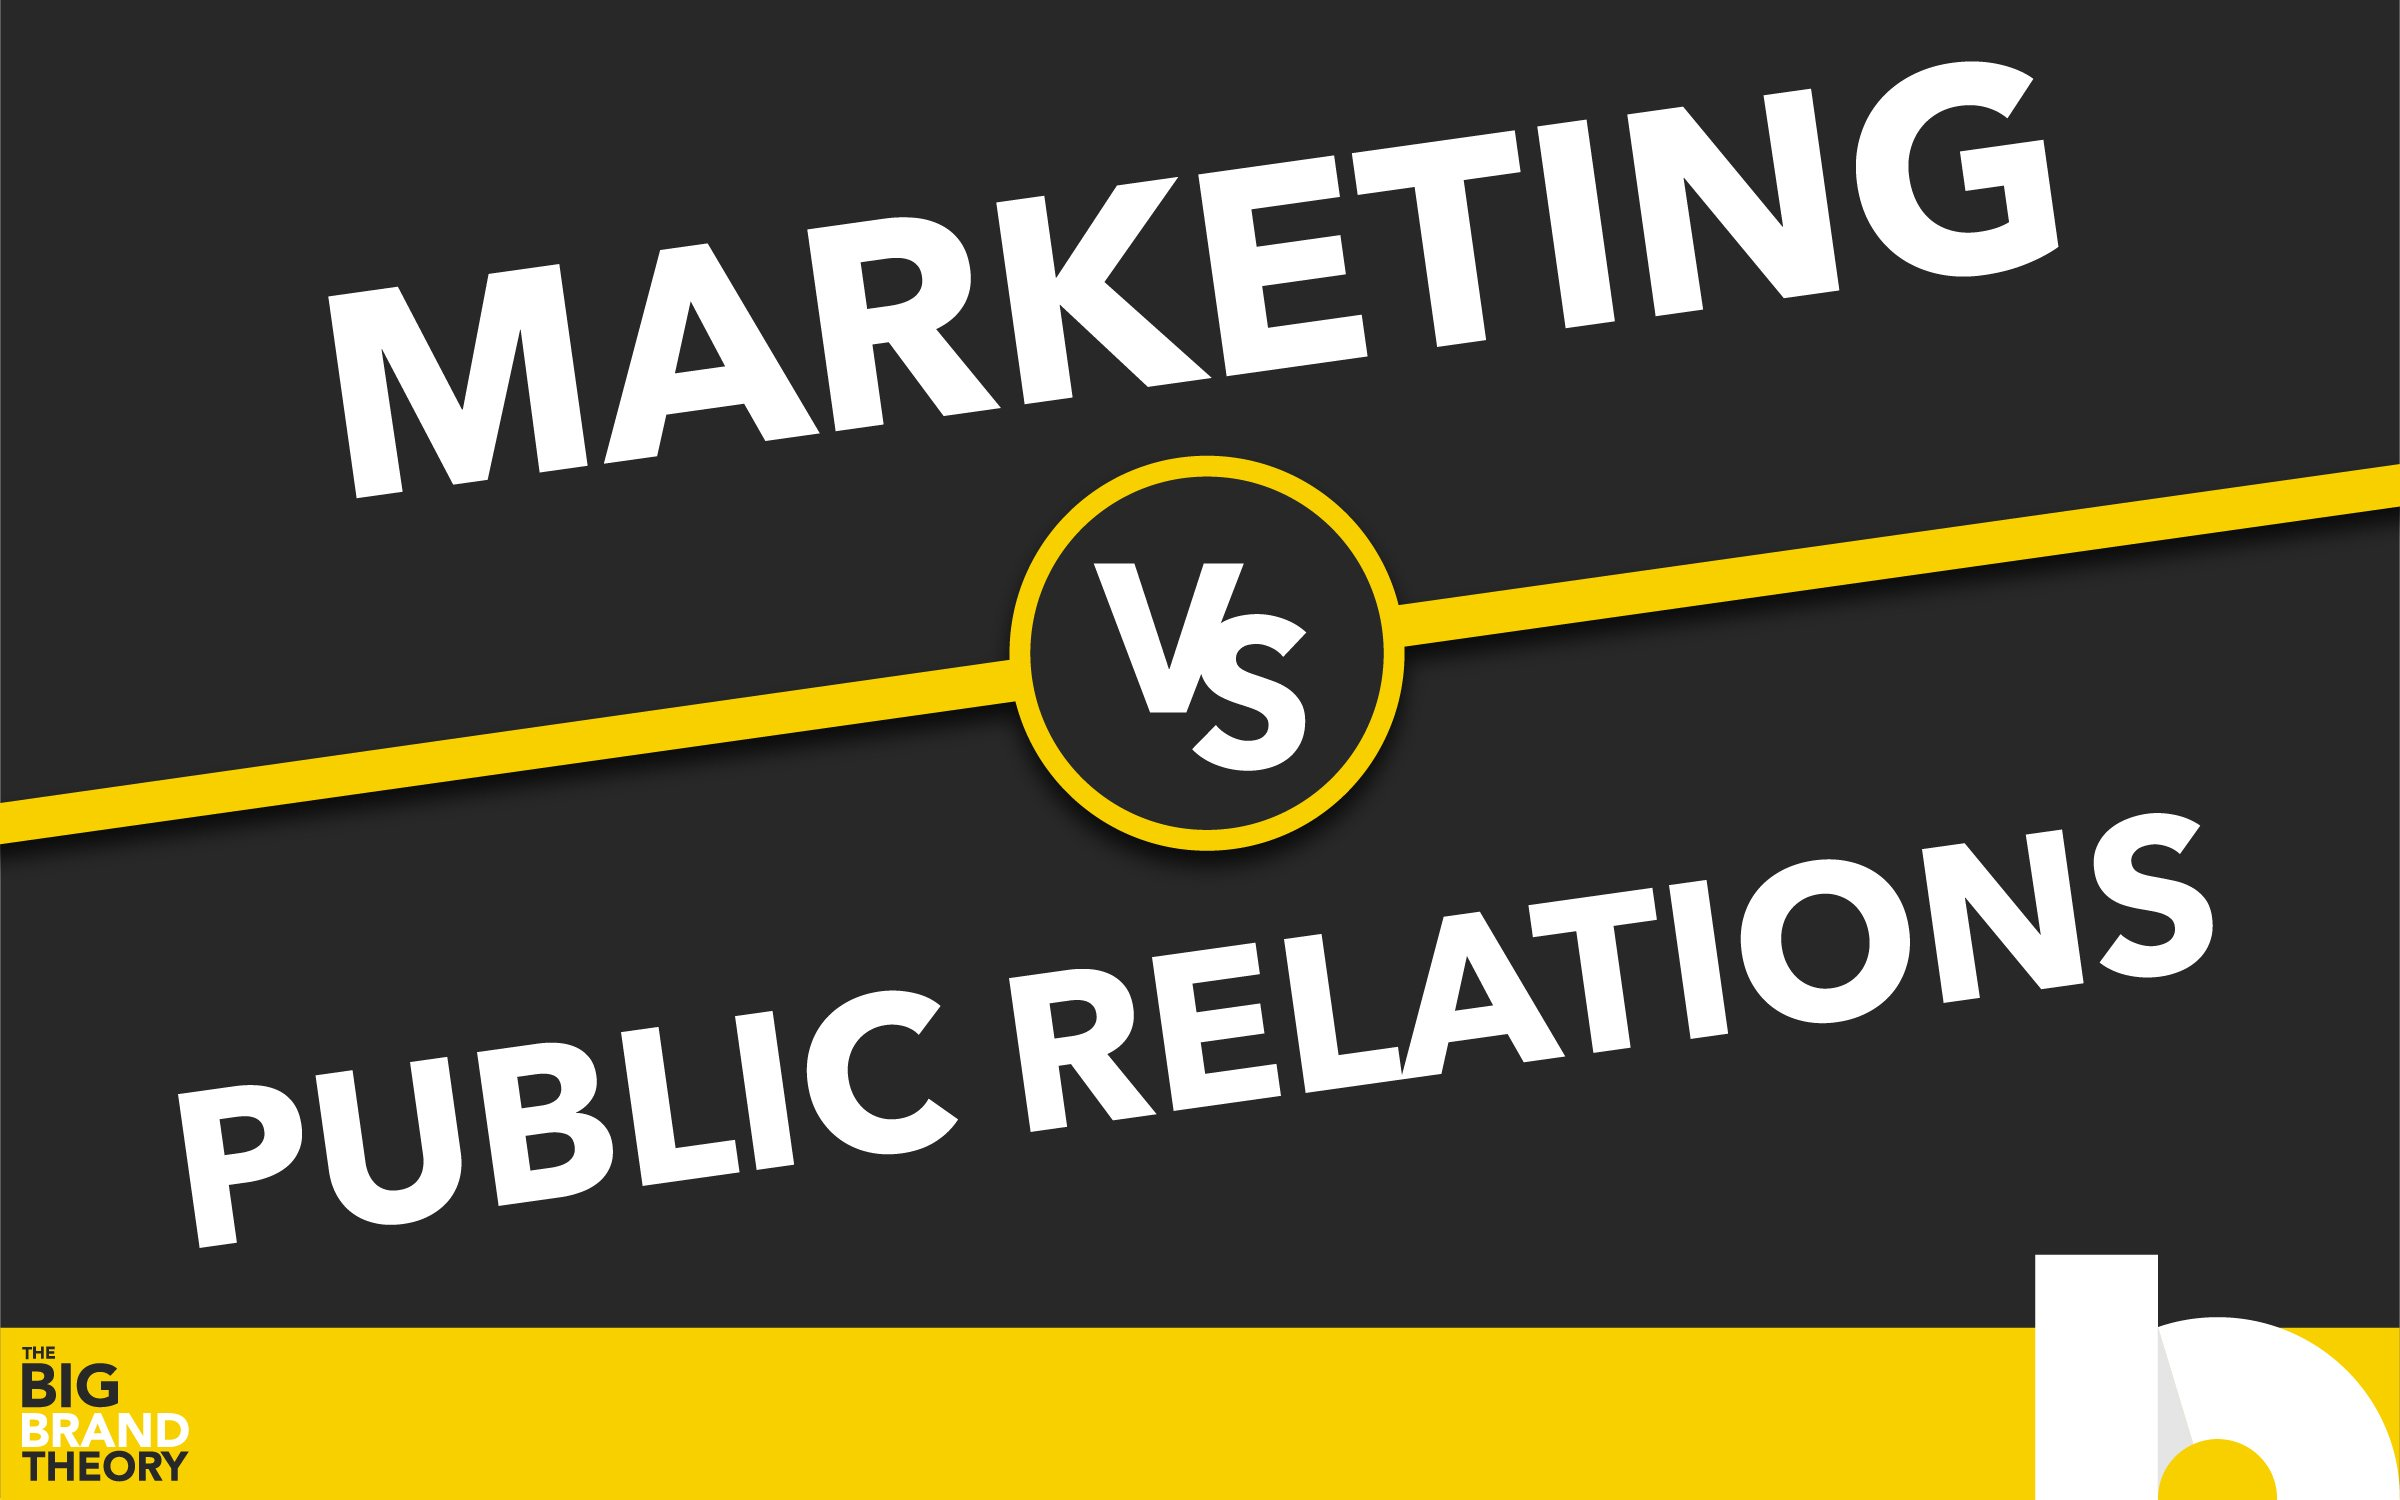 Marketing vs. Public Relations: The Big Brand Theory